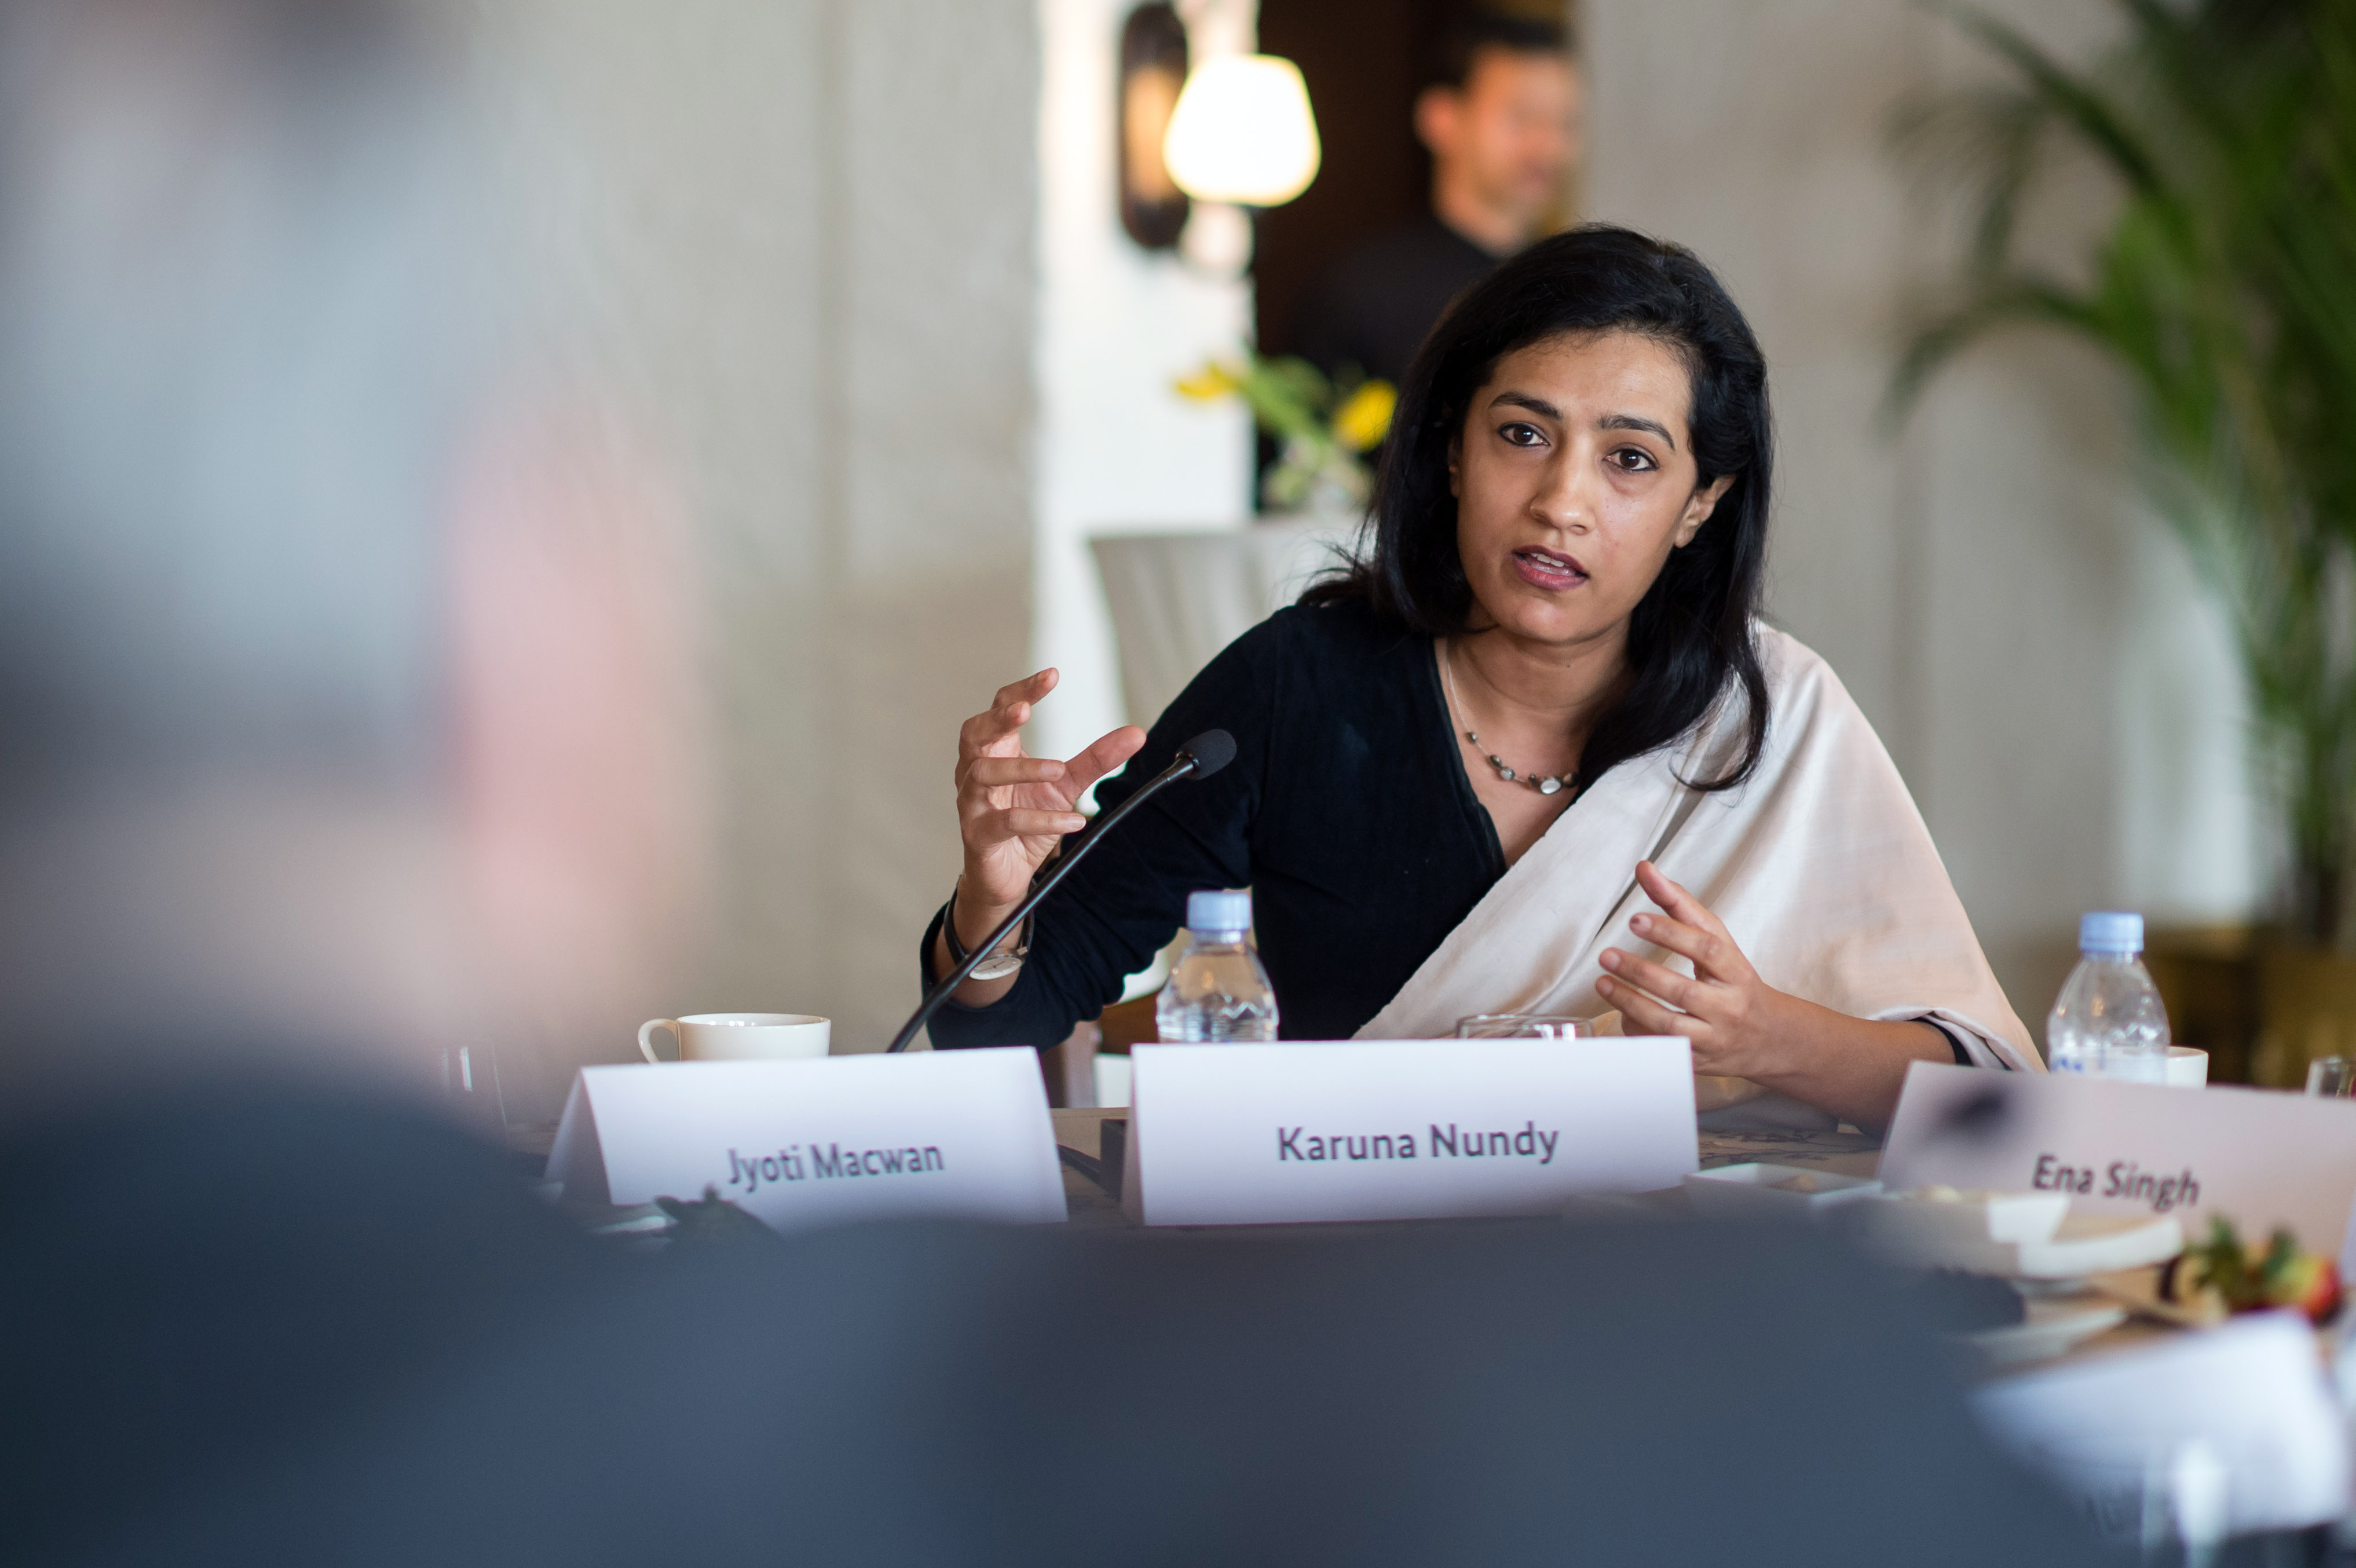 Karuna Nundy, seen here addressing German President Joachim Gauck on the role of women in India in February, is a founder of the Womanifesto campaign